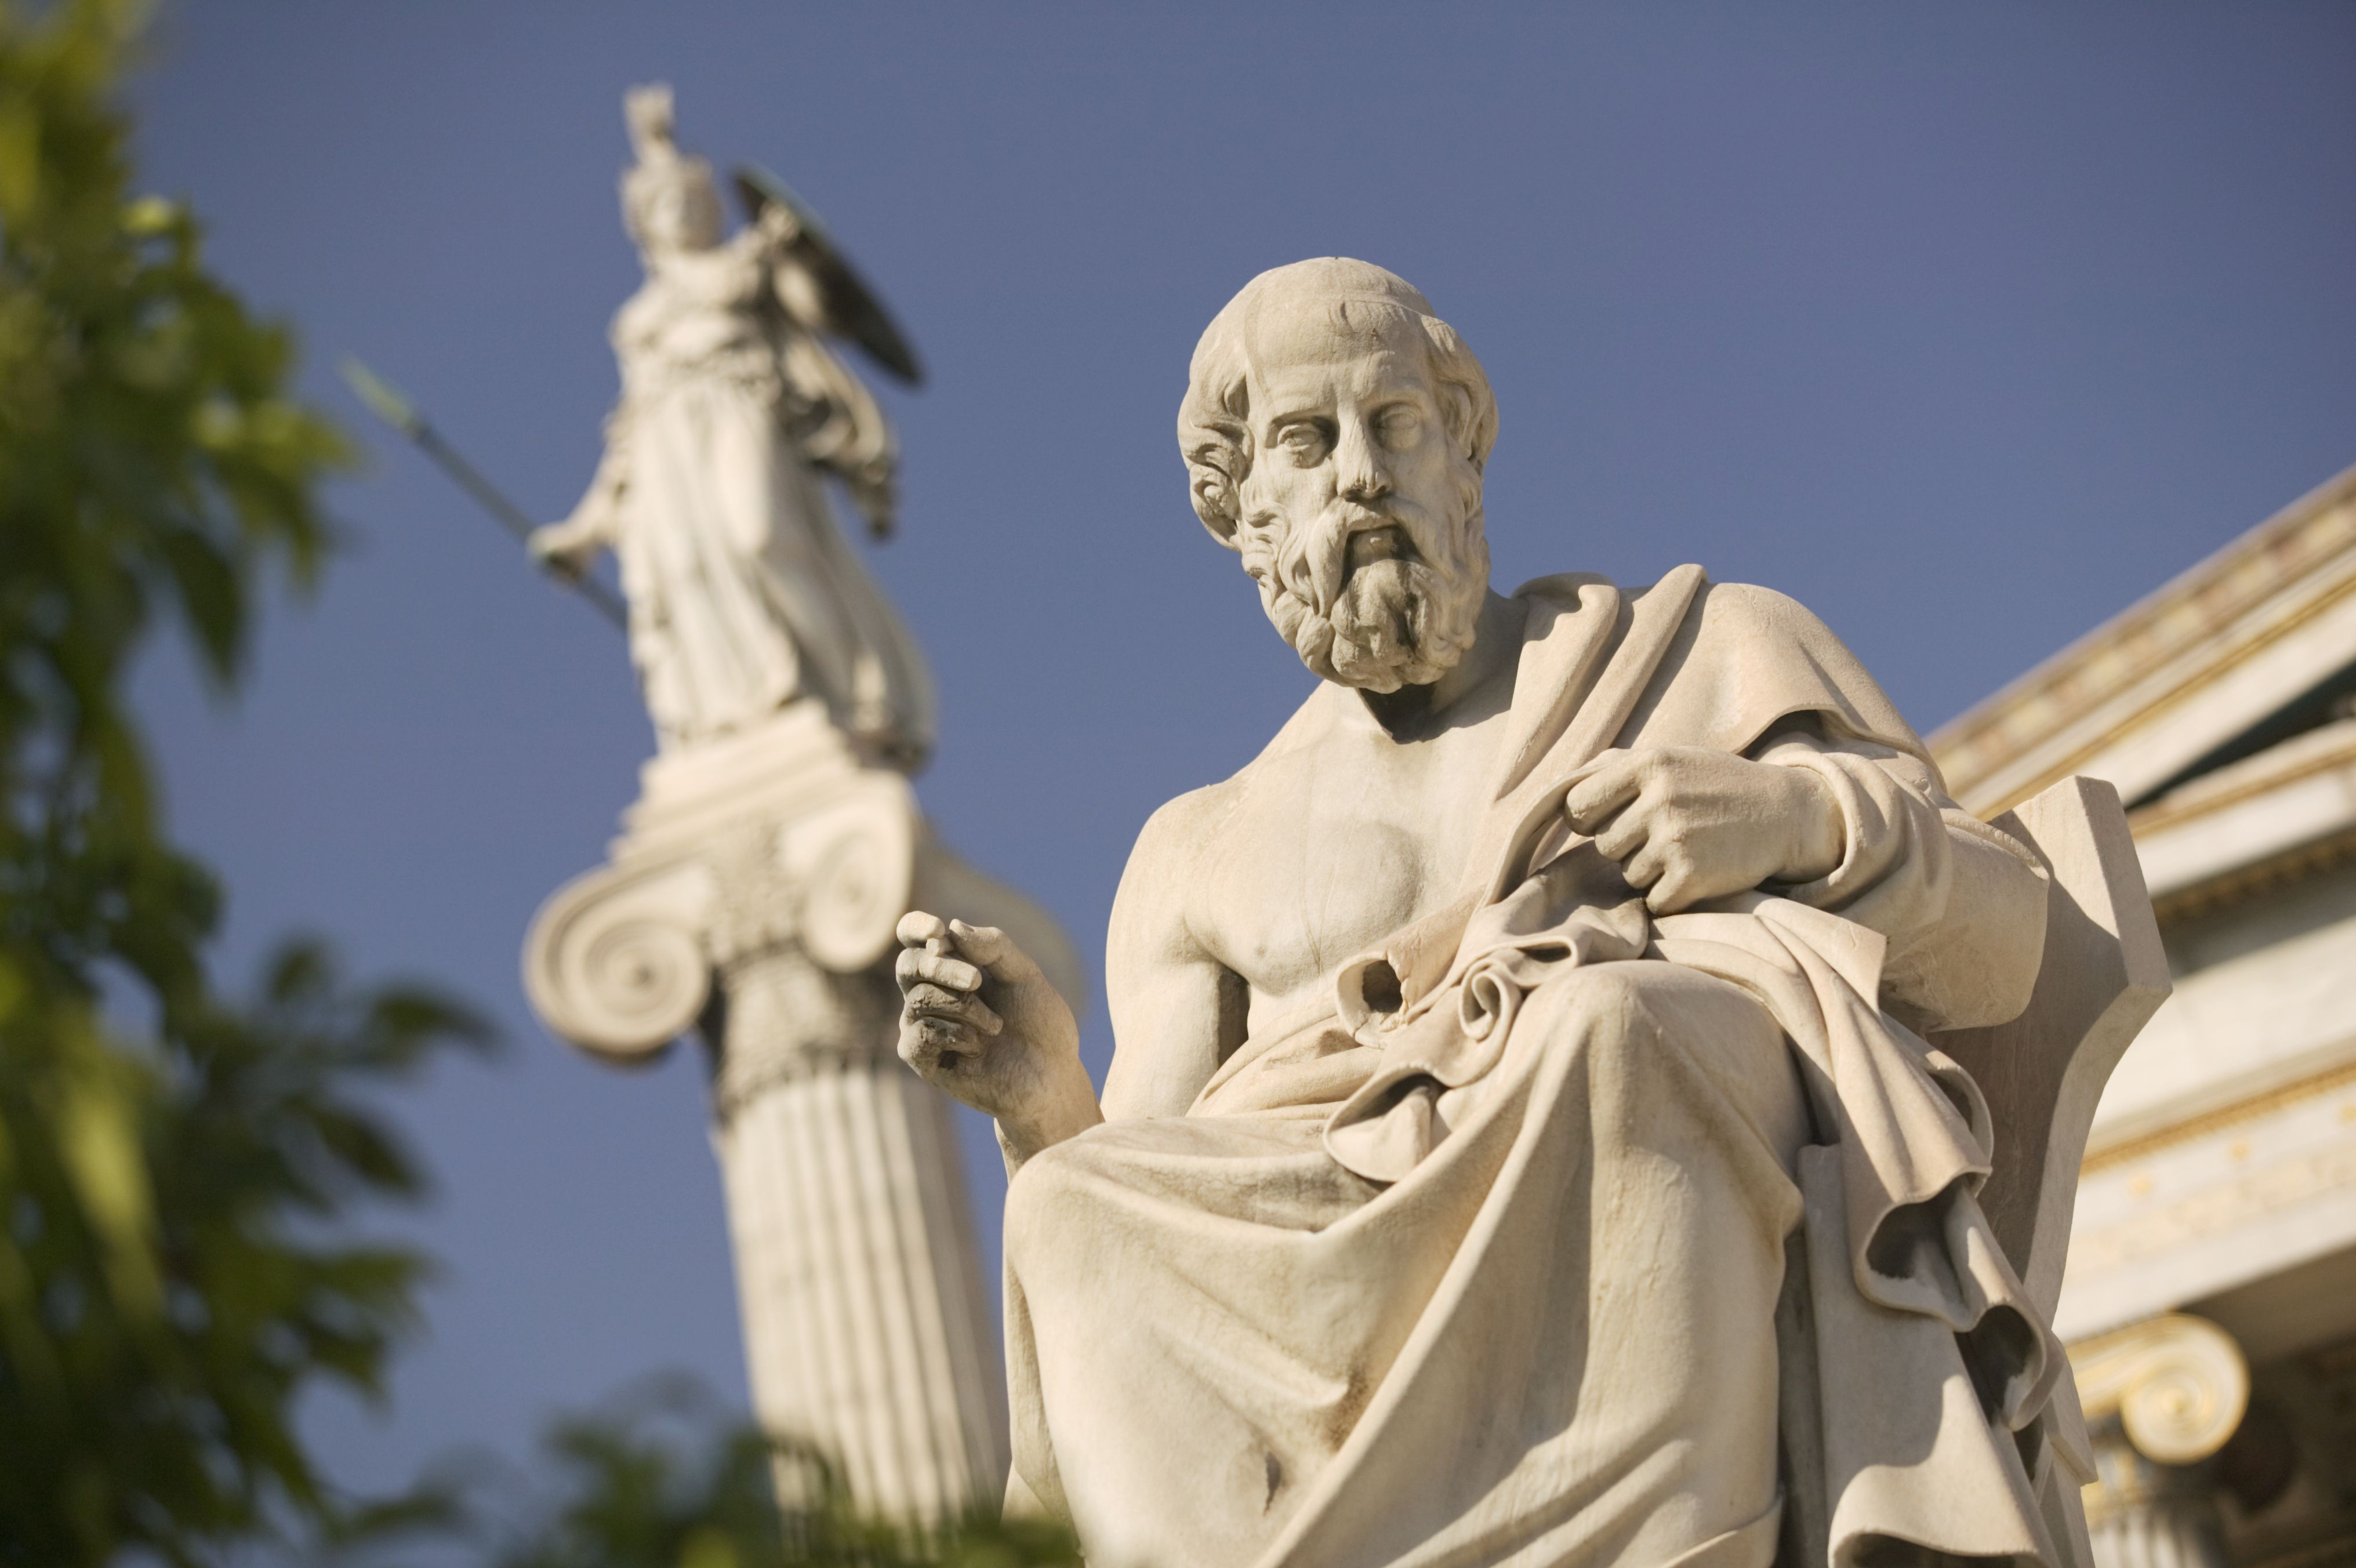 plato and aristotle nature nurture Free essay on nature versus nurture debate such philosophers as plato and aristotle tried to understand behavior the question of nature or nurture as the.